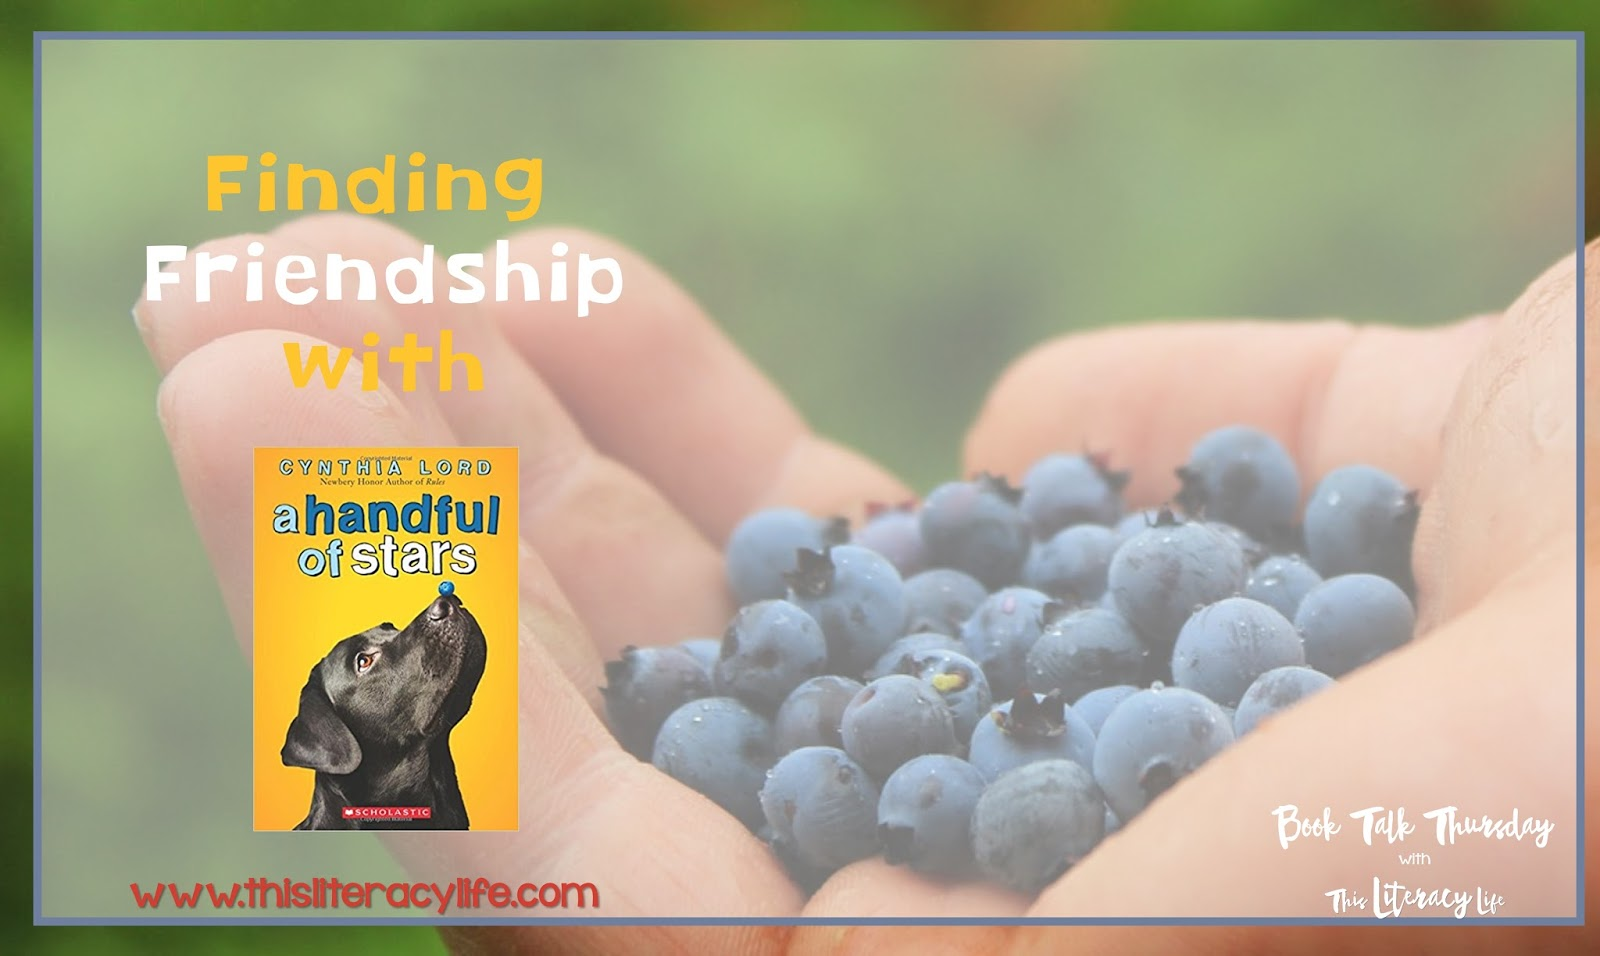 Friendships may come and go,but if we stay true to ourselves, our friendships will be more meaningful. Find out more in this Book Talk Thursday with A Handful of Stars.